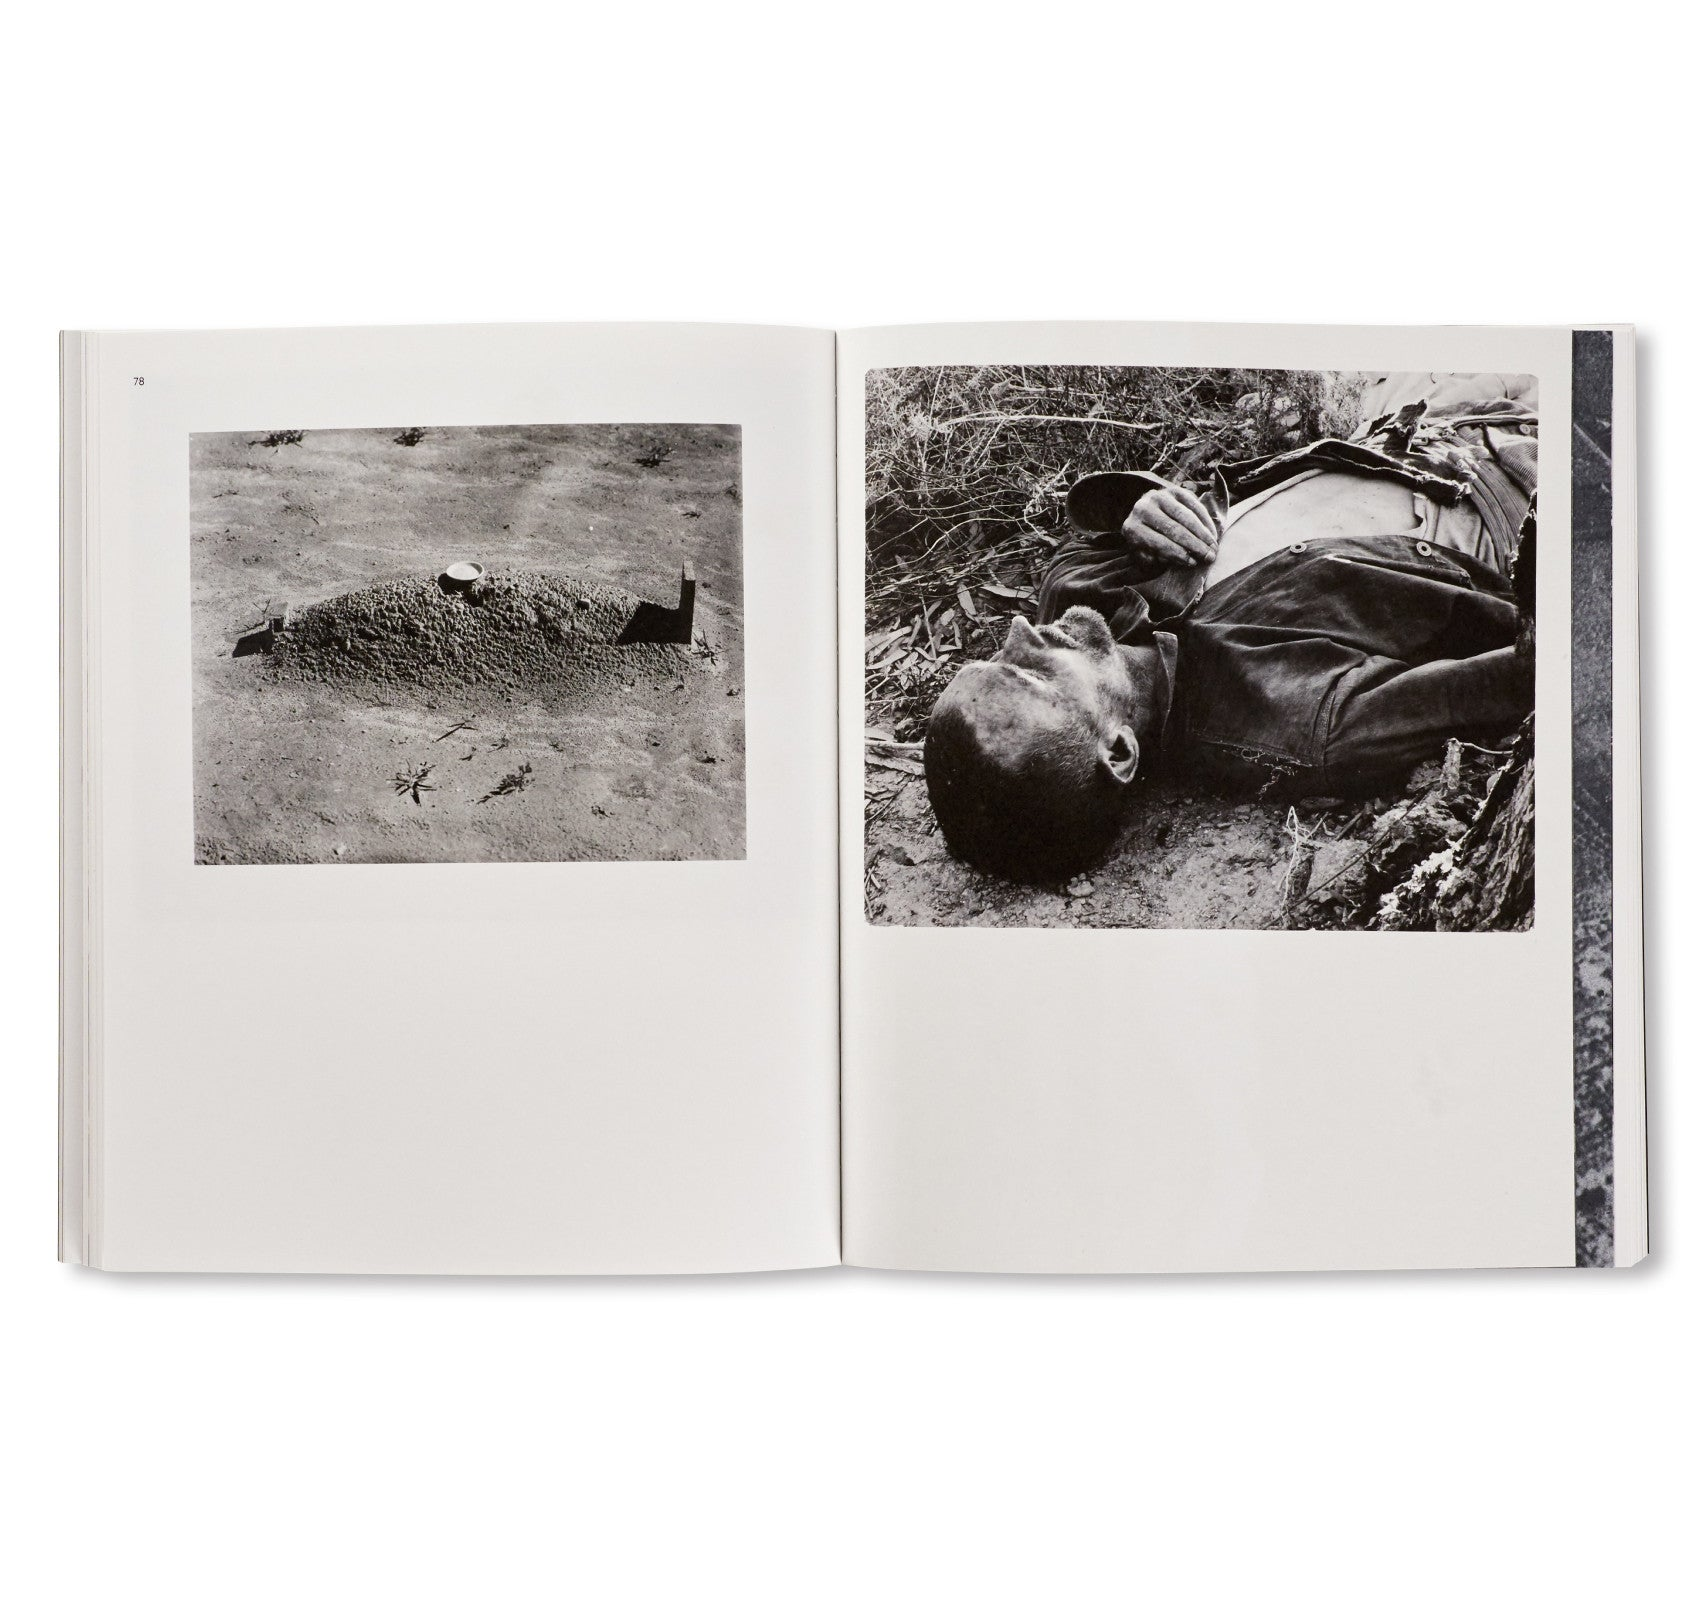 A HANDFUL OF DUST by David Campany